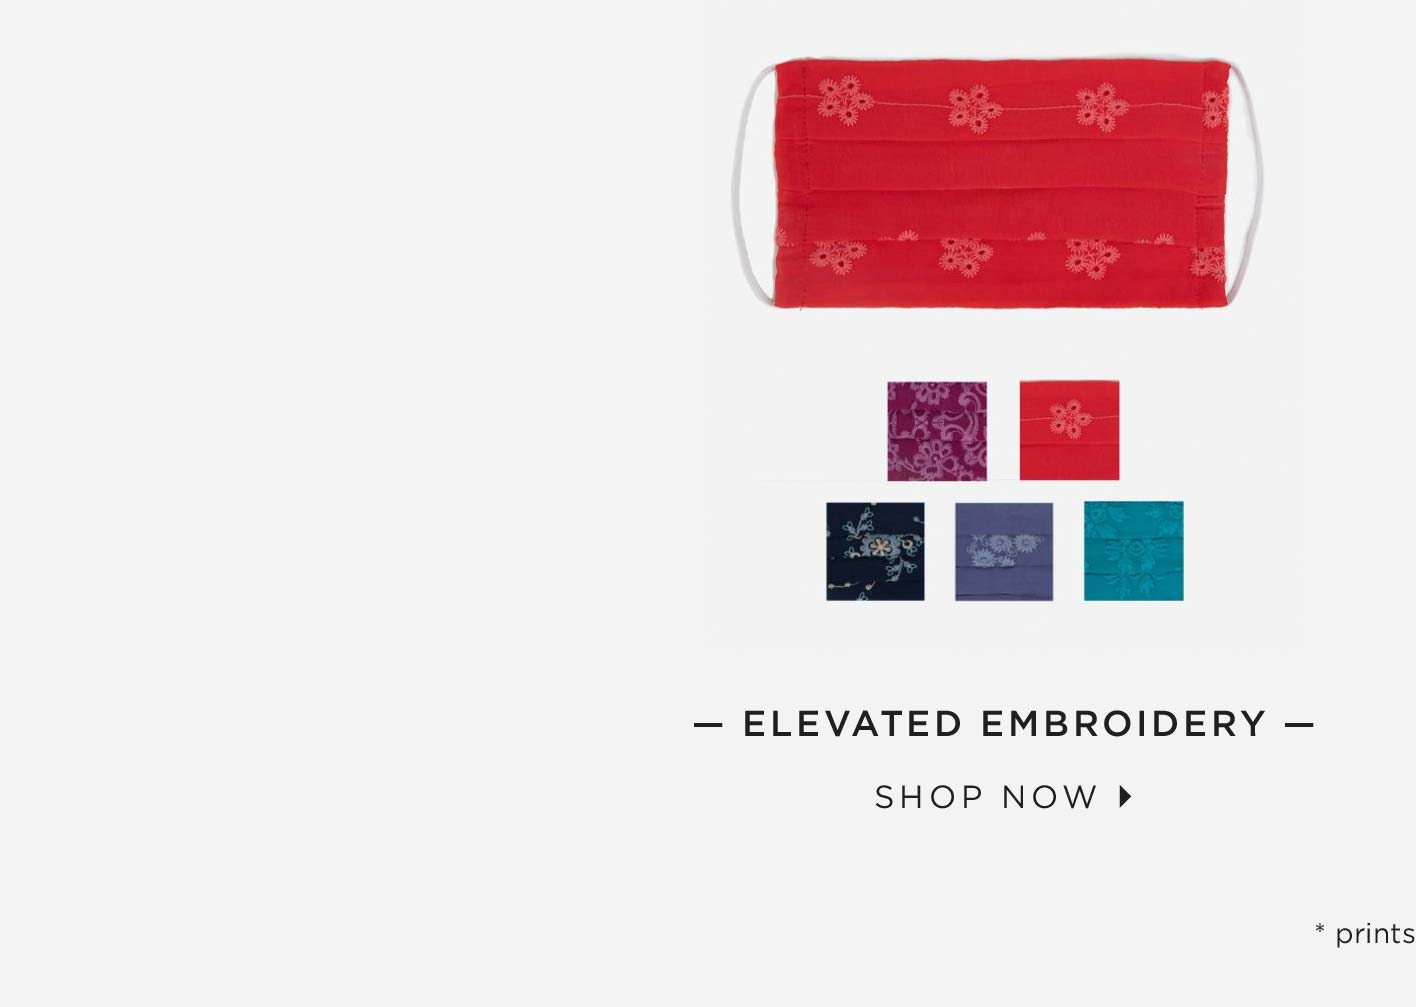 Elevated Embroidery — Shop Now